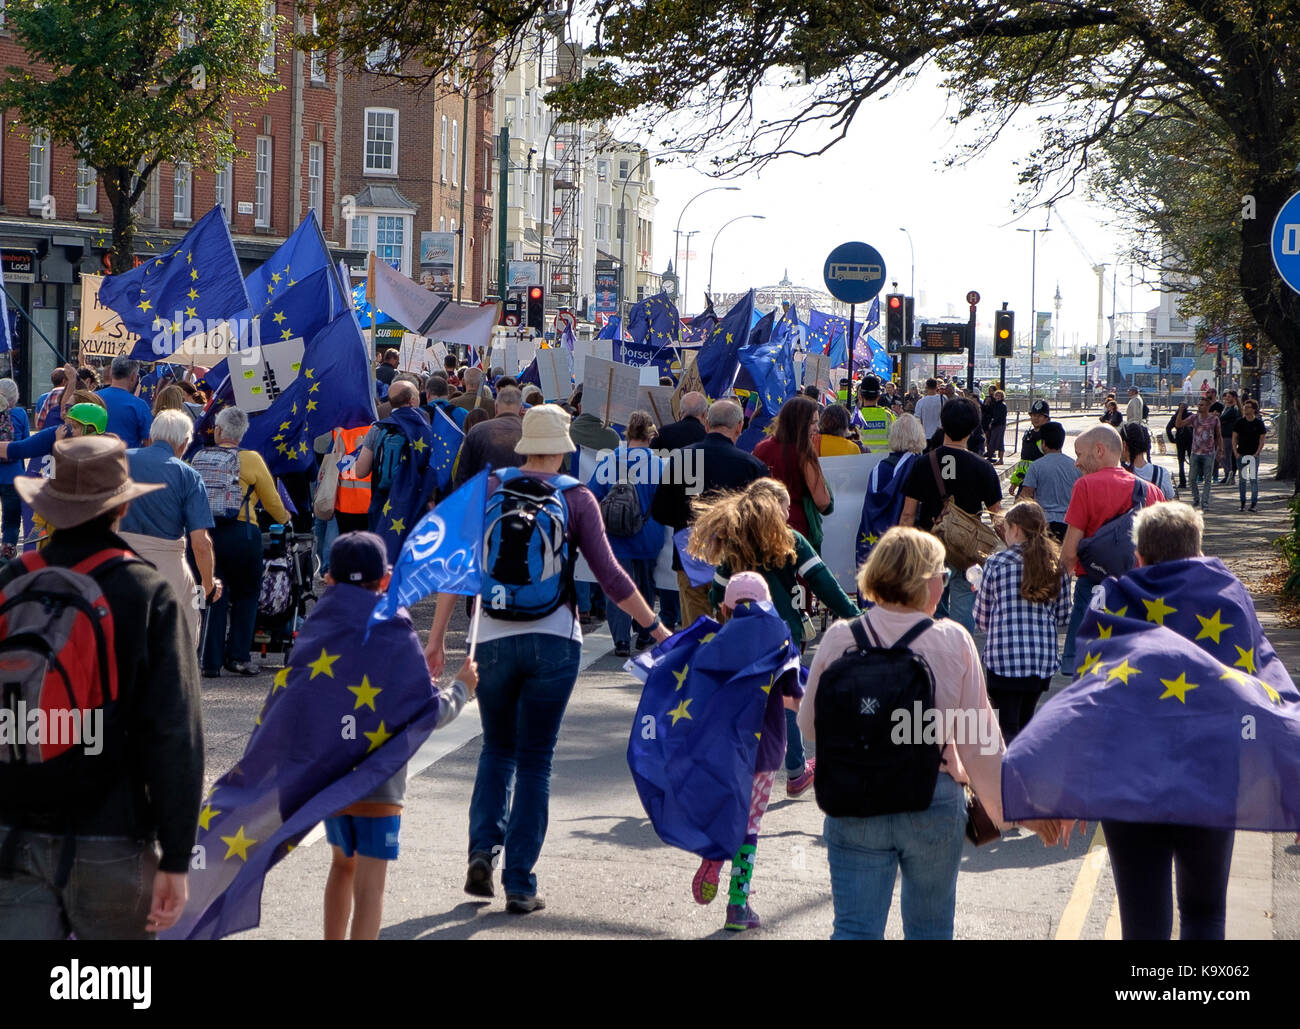 Brighton, UK. 24th Sep, 2017. Protestors in a pro-EU, anti-Brexit demonstration march as the Labour Party Conference - Stock Image